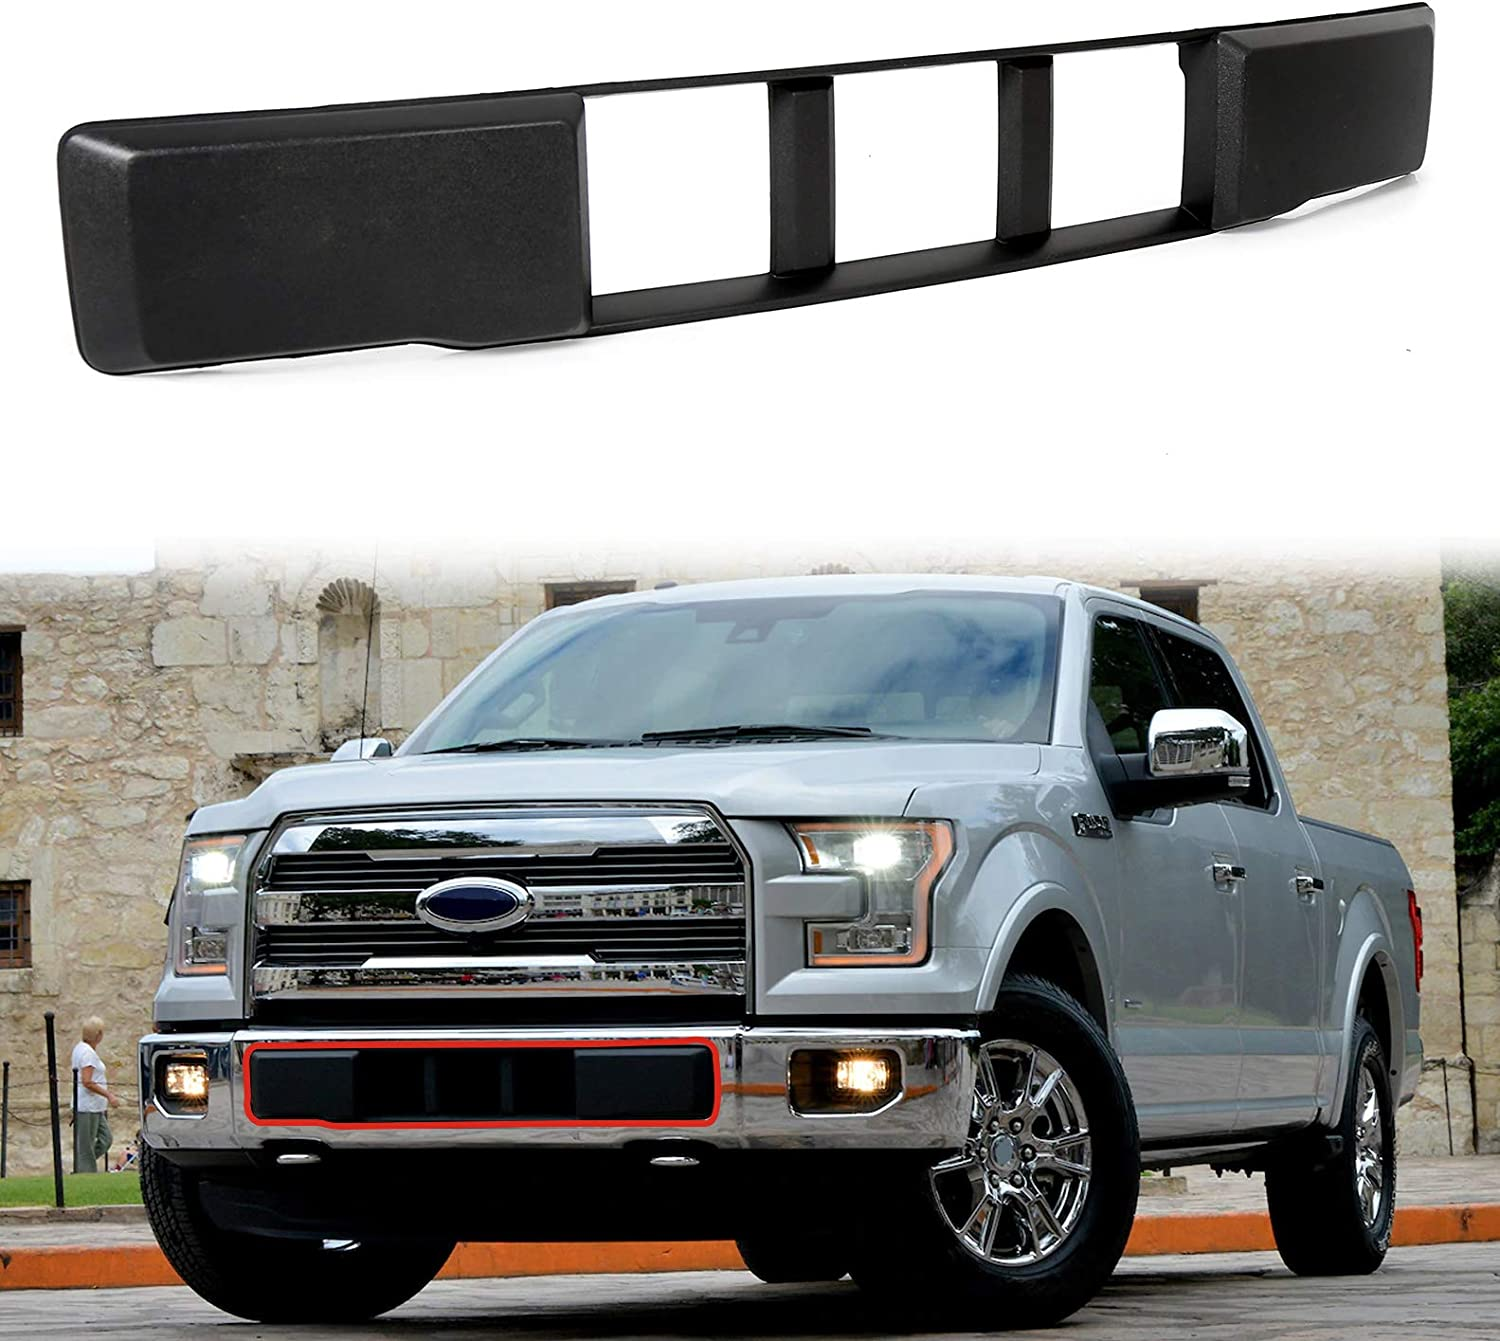 Buy Ecotric Compatible With Ford F 150 F150 2015 2016 2017 Front Bumper Lower Grille Trim Panel Black Replacment For Fl3z 17e810 Ca Online In Indonesia B07wt3glls